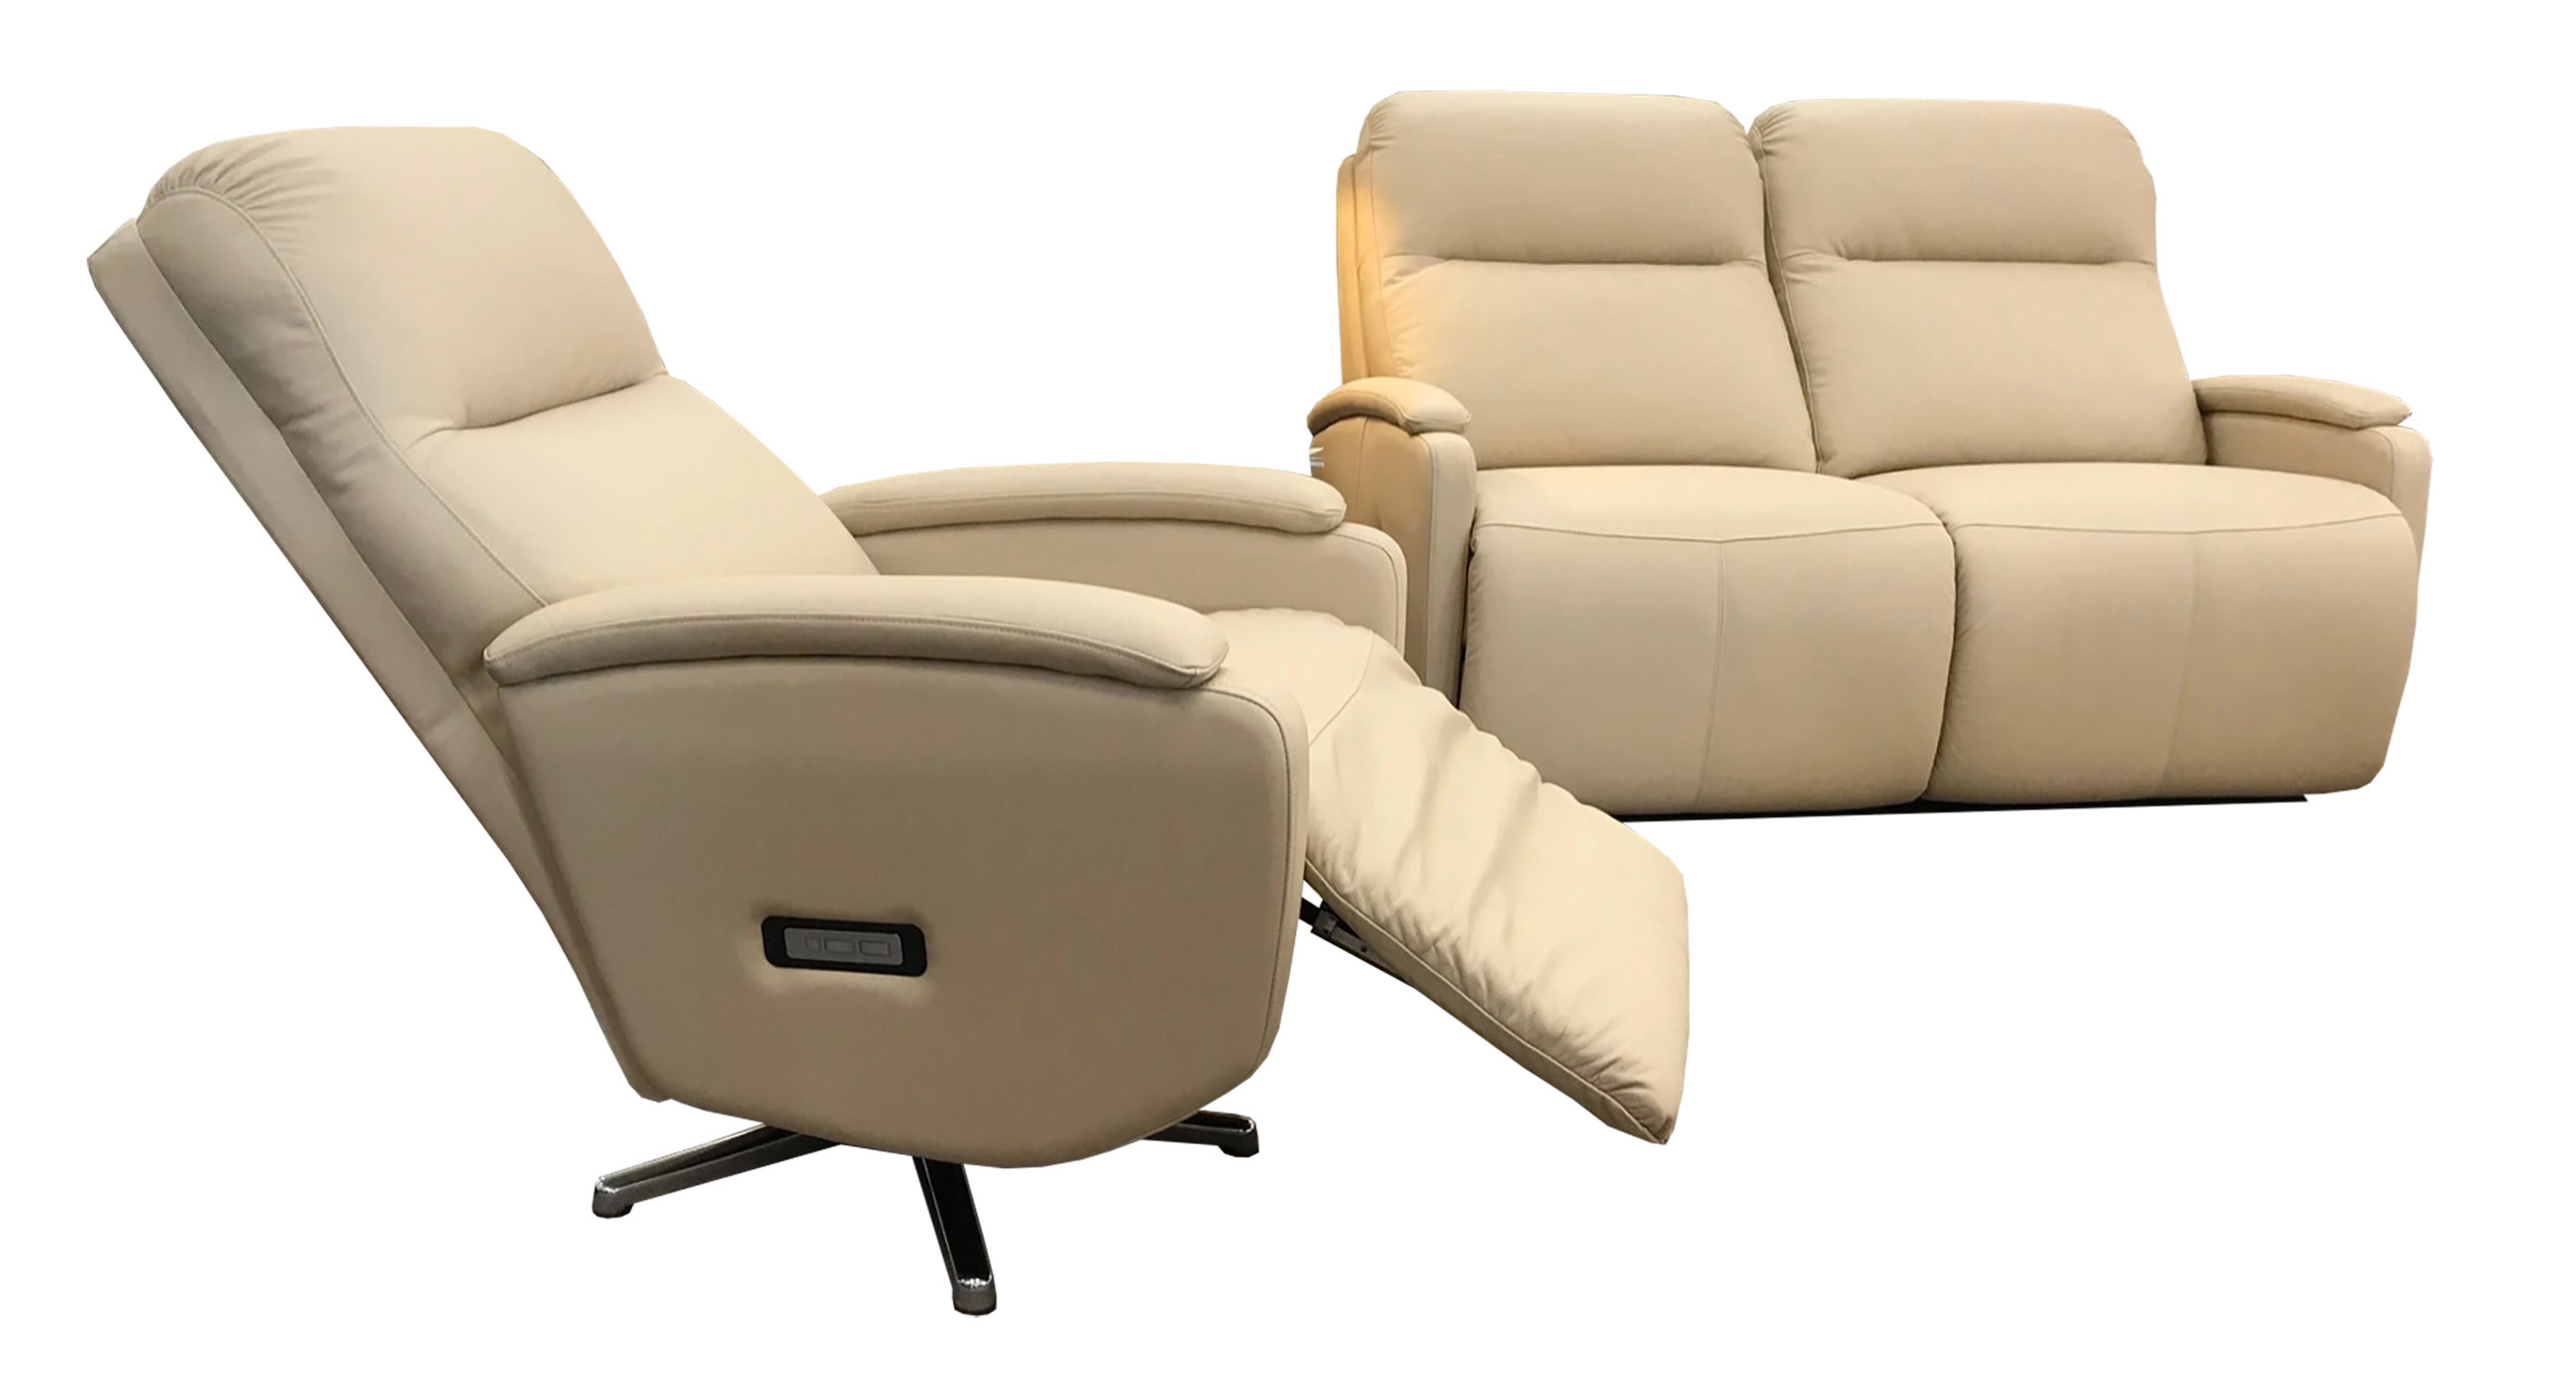 Klein Reclining Sofa and Chairs